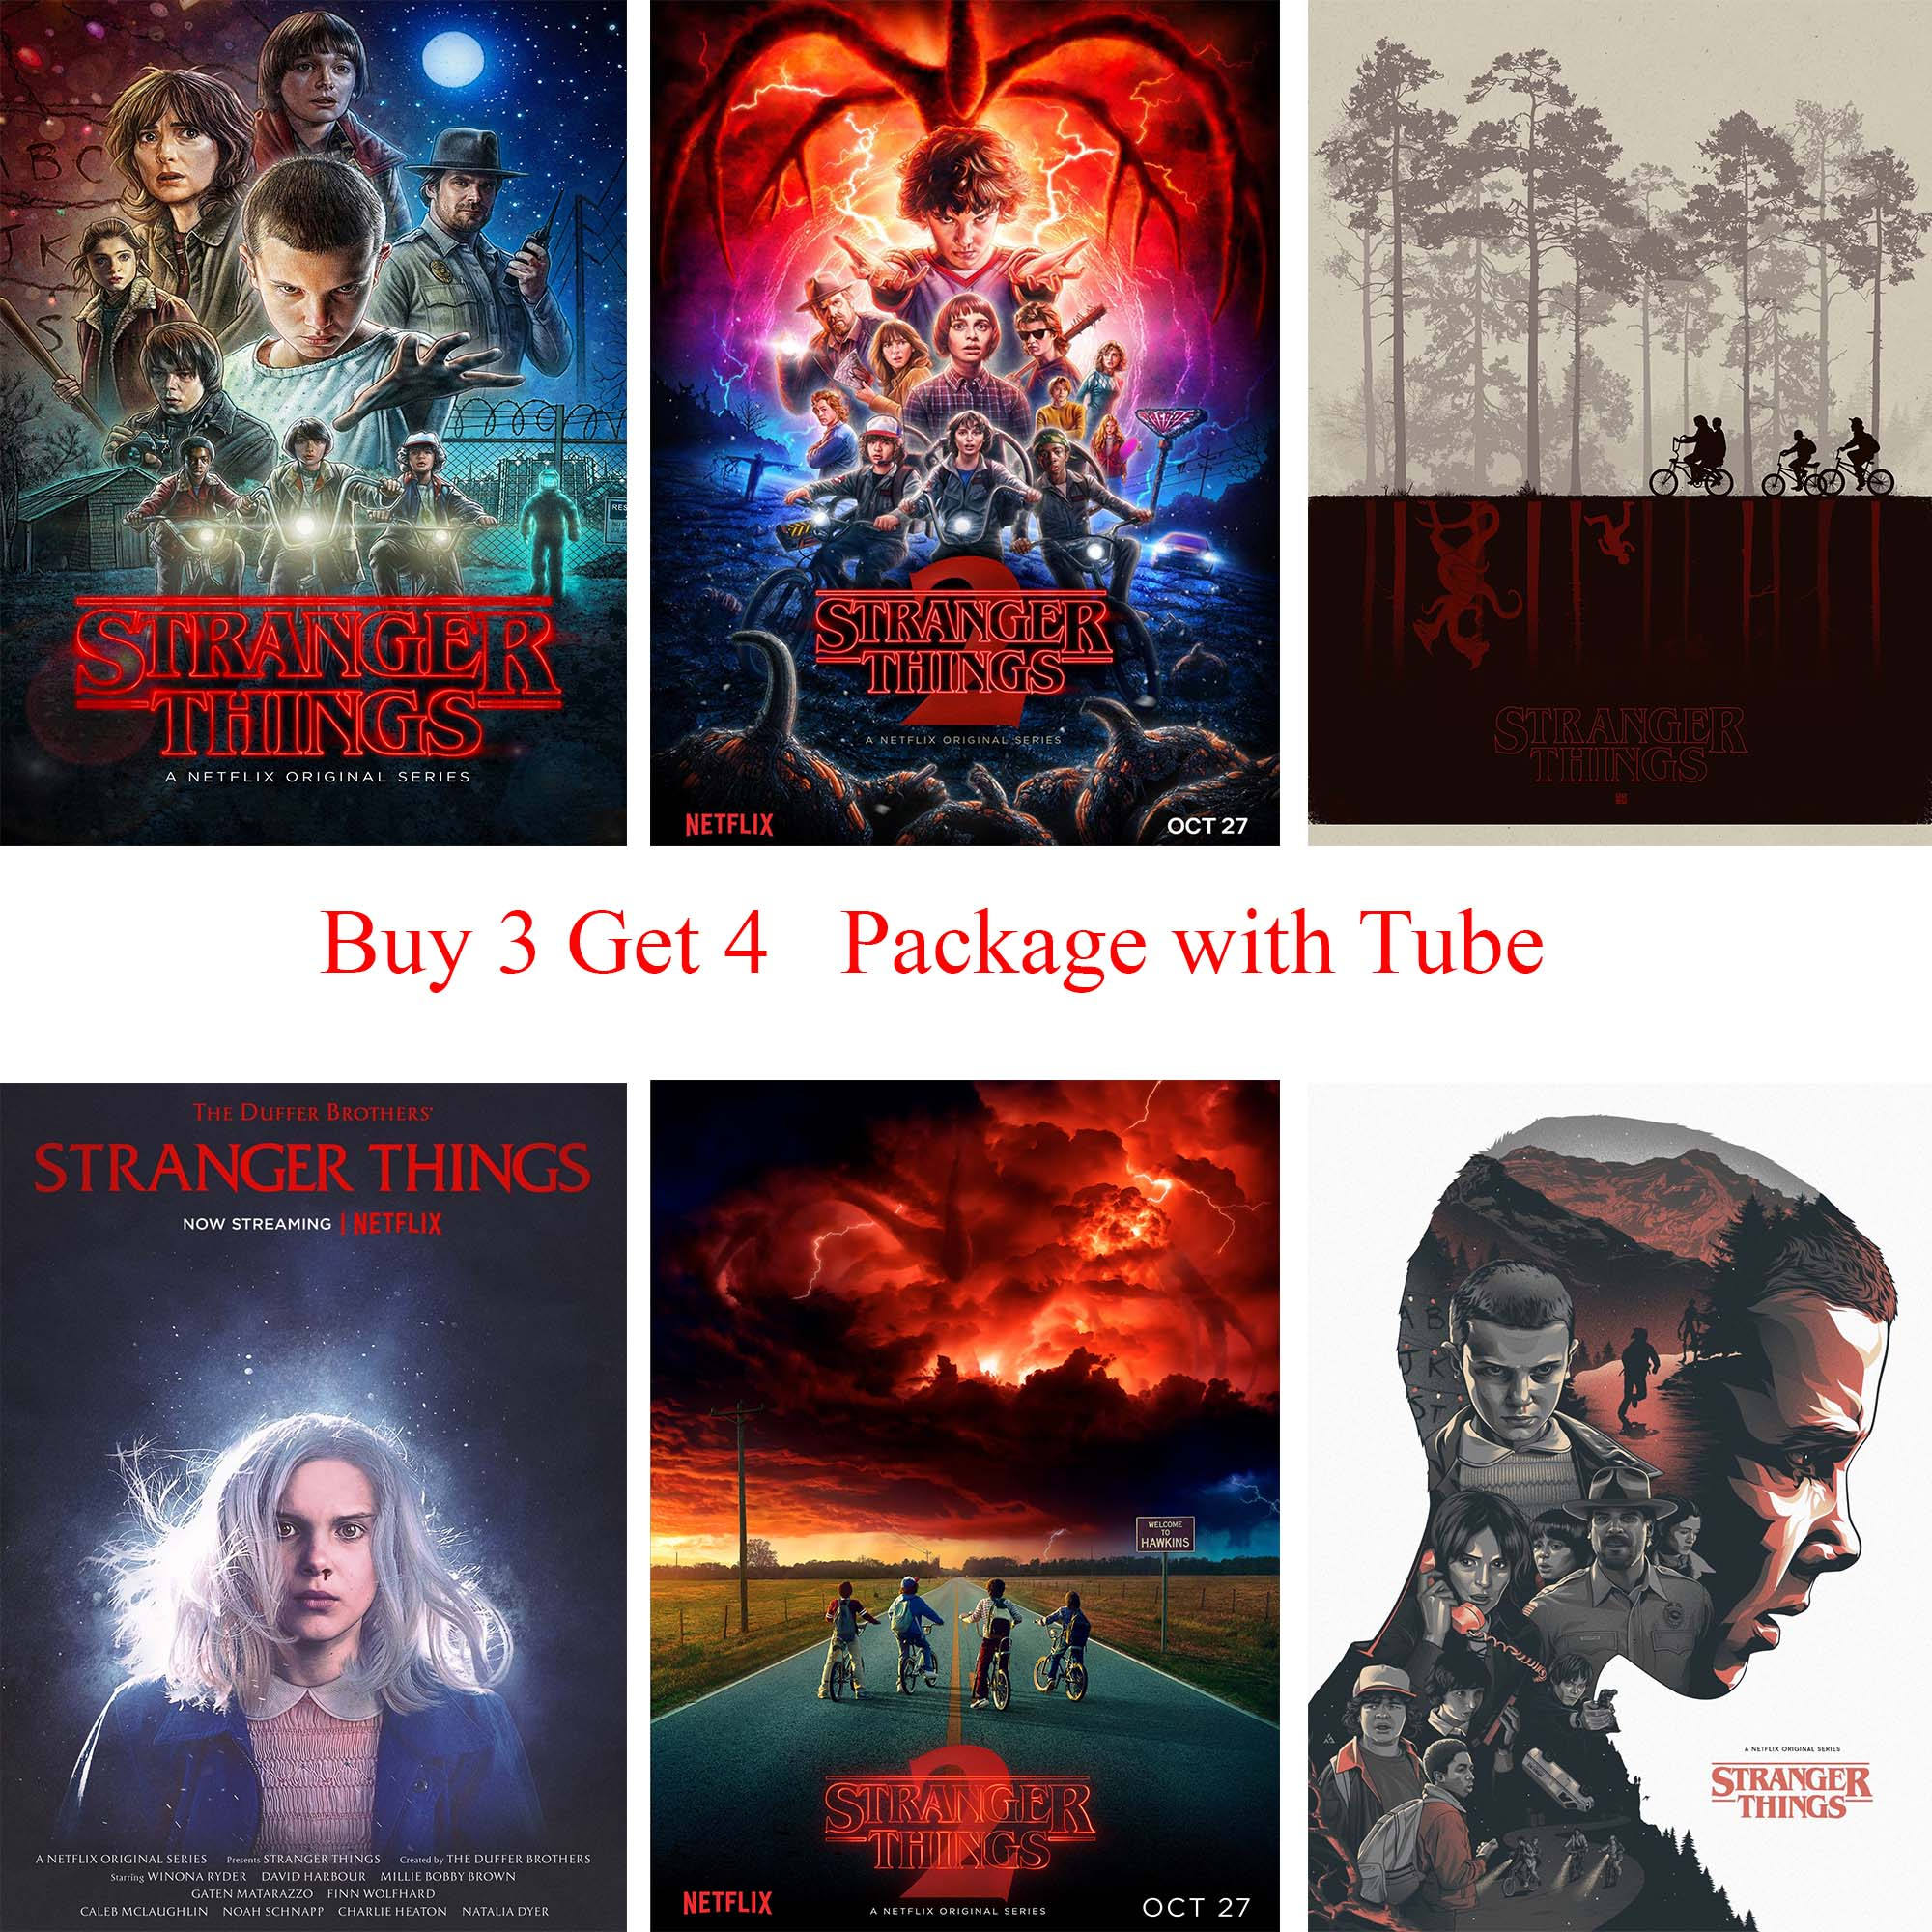 Stranger Things Season 2 Movie Posters Wall Stickers White Coated Paper Prints Home Decoration Home Art Brand rustica mini noce slate 12 in x 12 in x 8 mm porcelain mosaic tile backsplash images